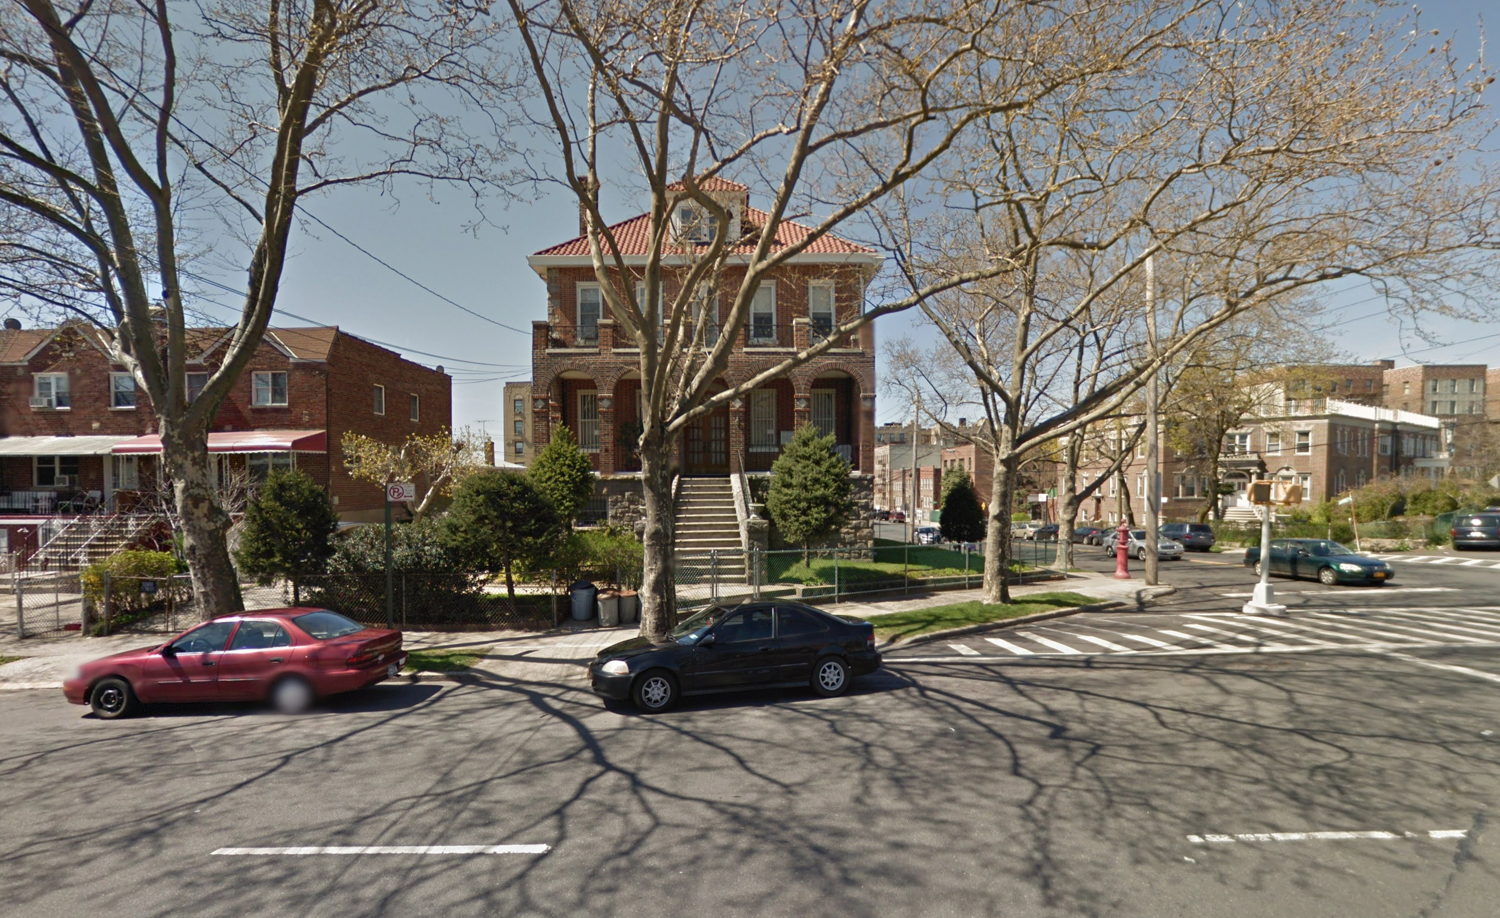 2761 Bronxwood Avenue, via Google Maps